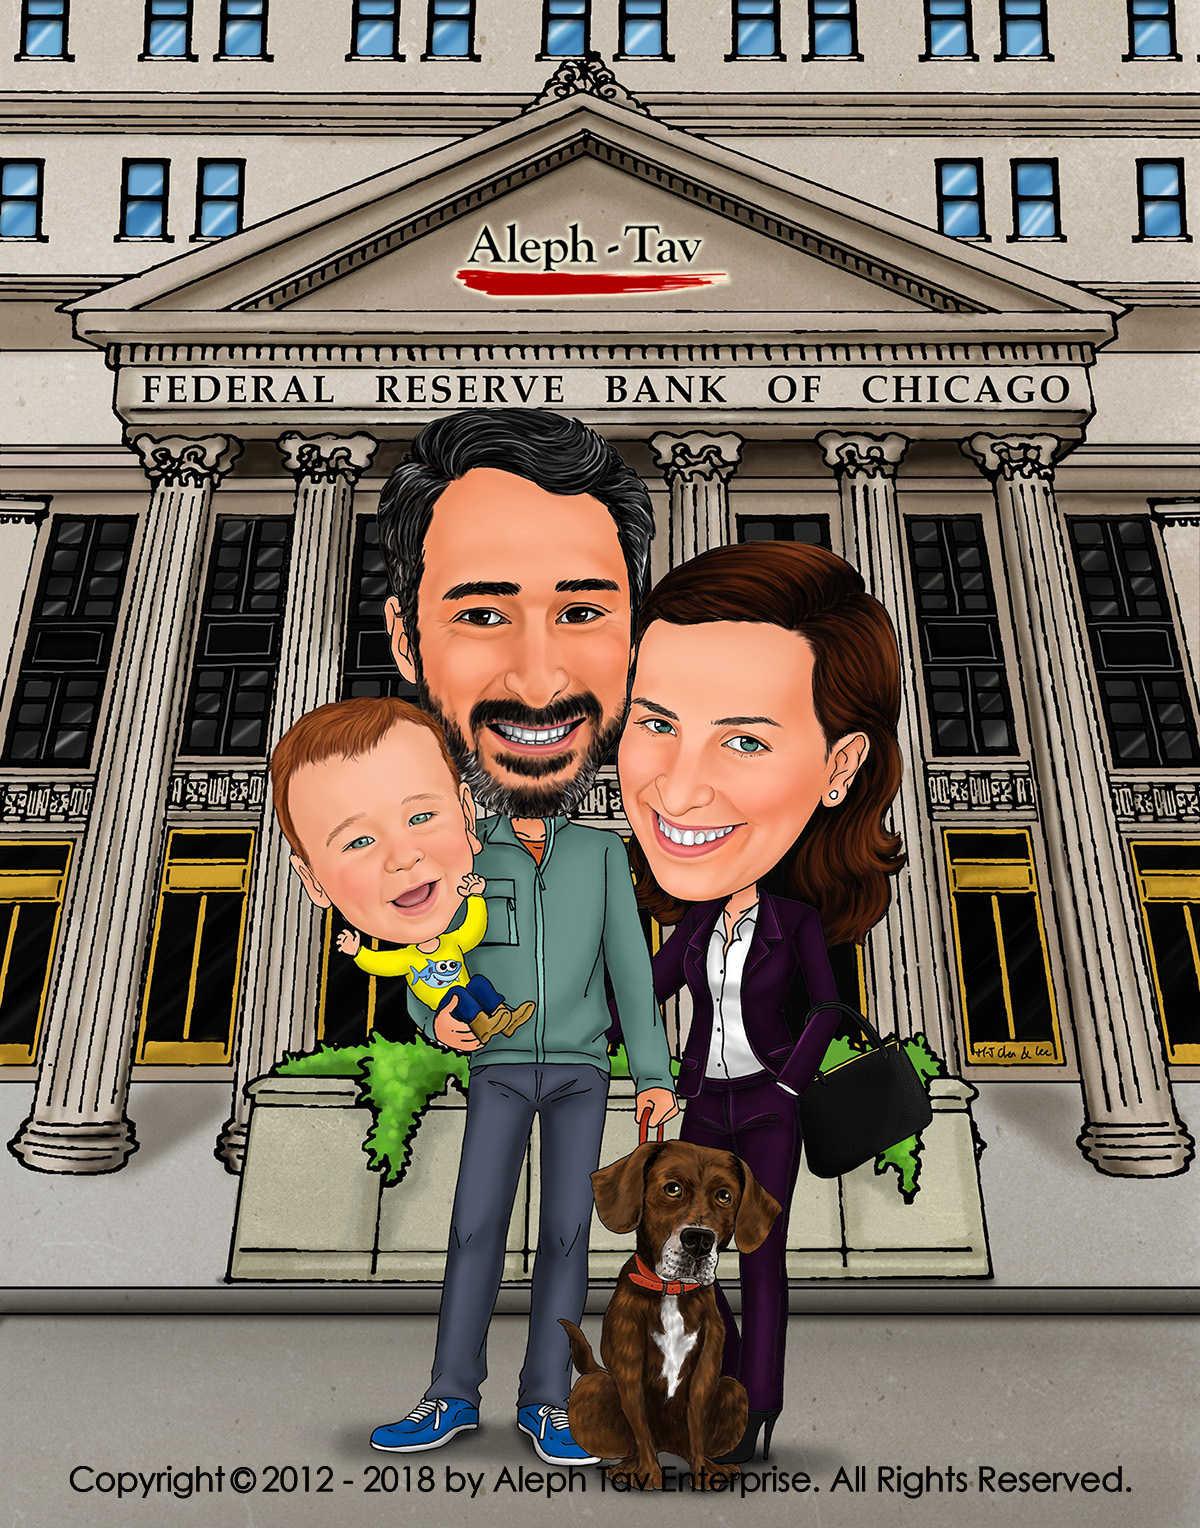 Customize Digital Caricature For Mother S Day Perfect For Wife And Mom Caricature Story Caricature Story Blog Creative Unique Gift Of Personalize Digital Art Cartoon Portraits